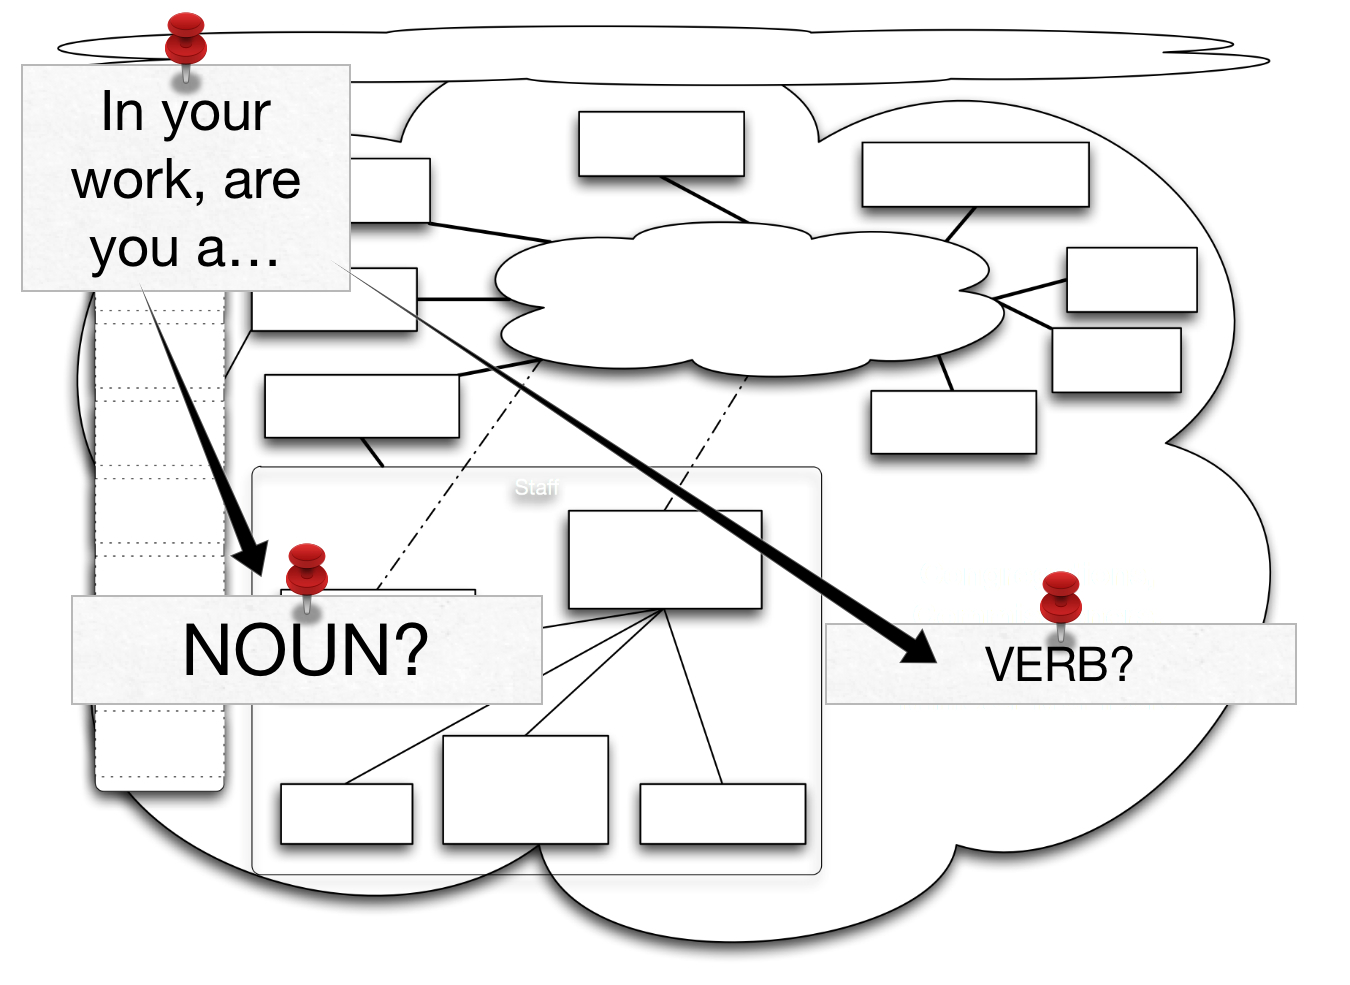 In your work, are you best described by a verb, or a noun? It matters. Position, or Function?